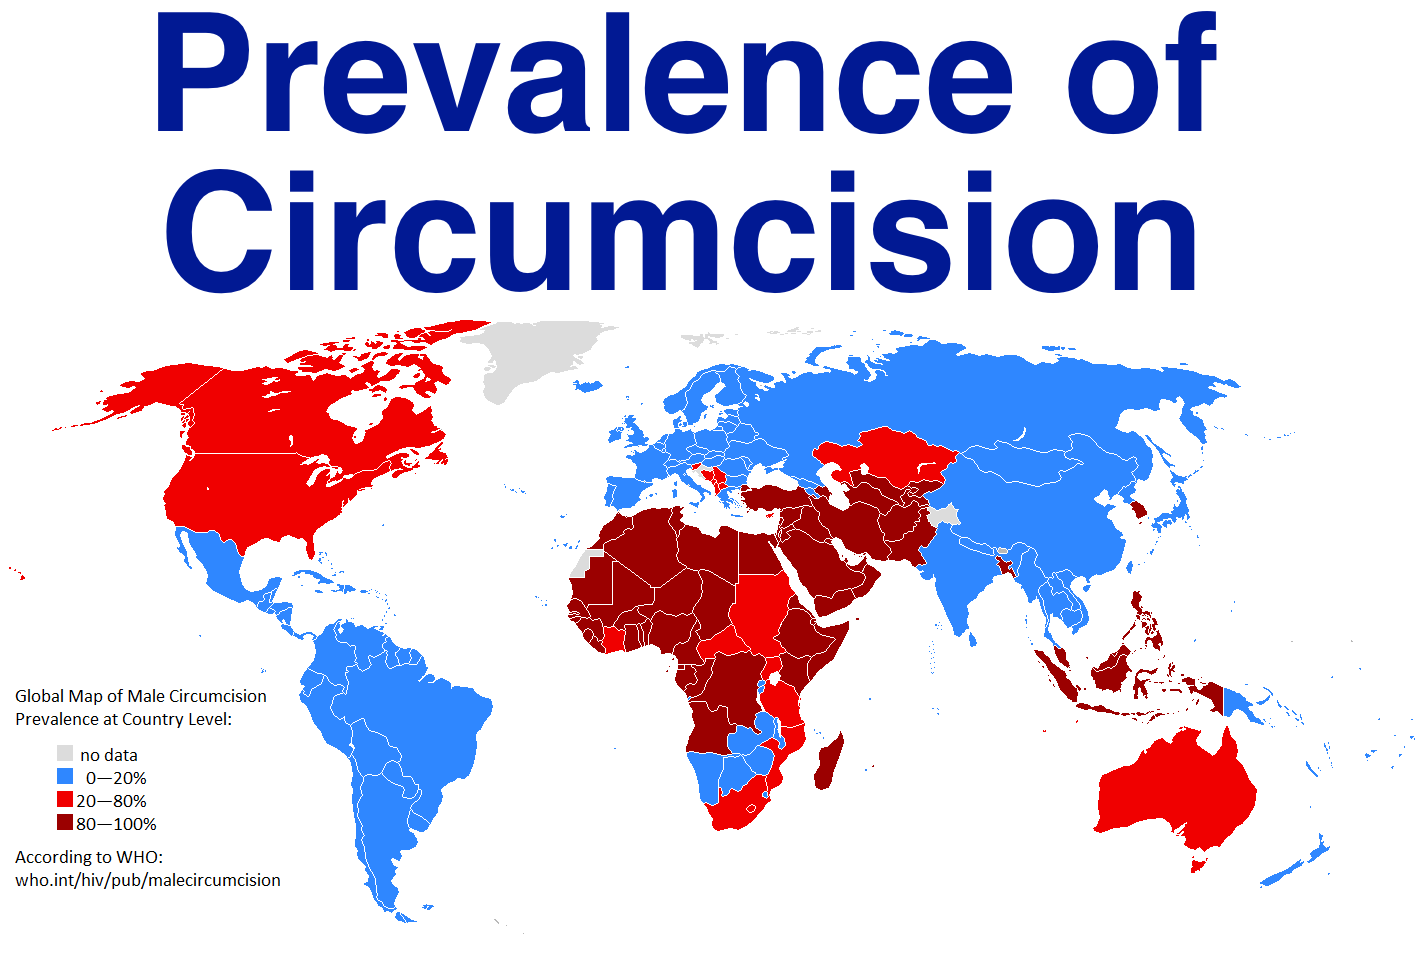 male circumcision is prevalent in the u s israel and muslim countries